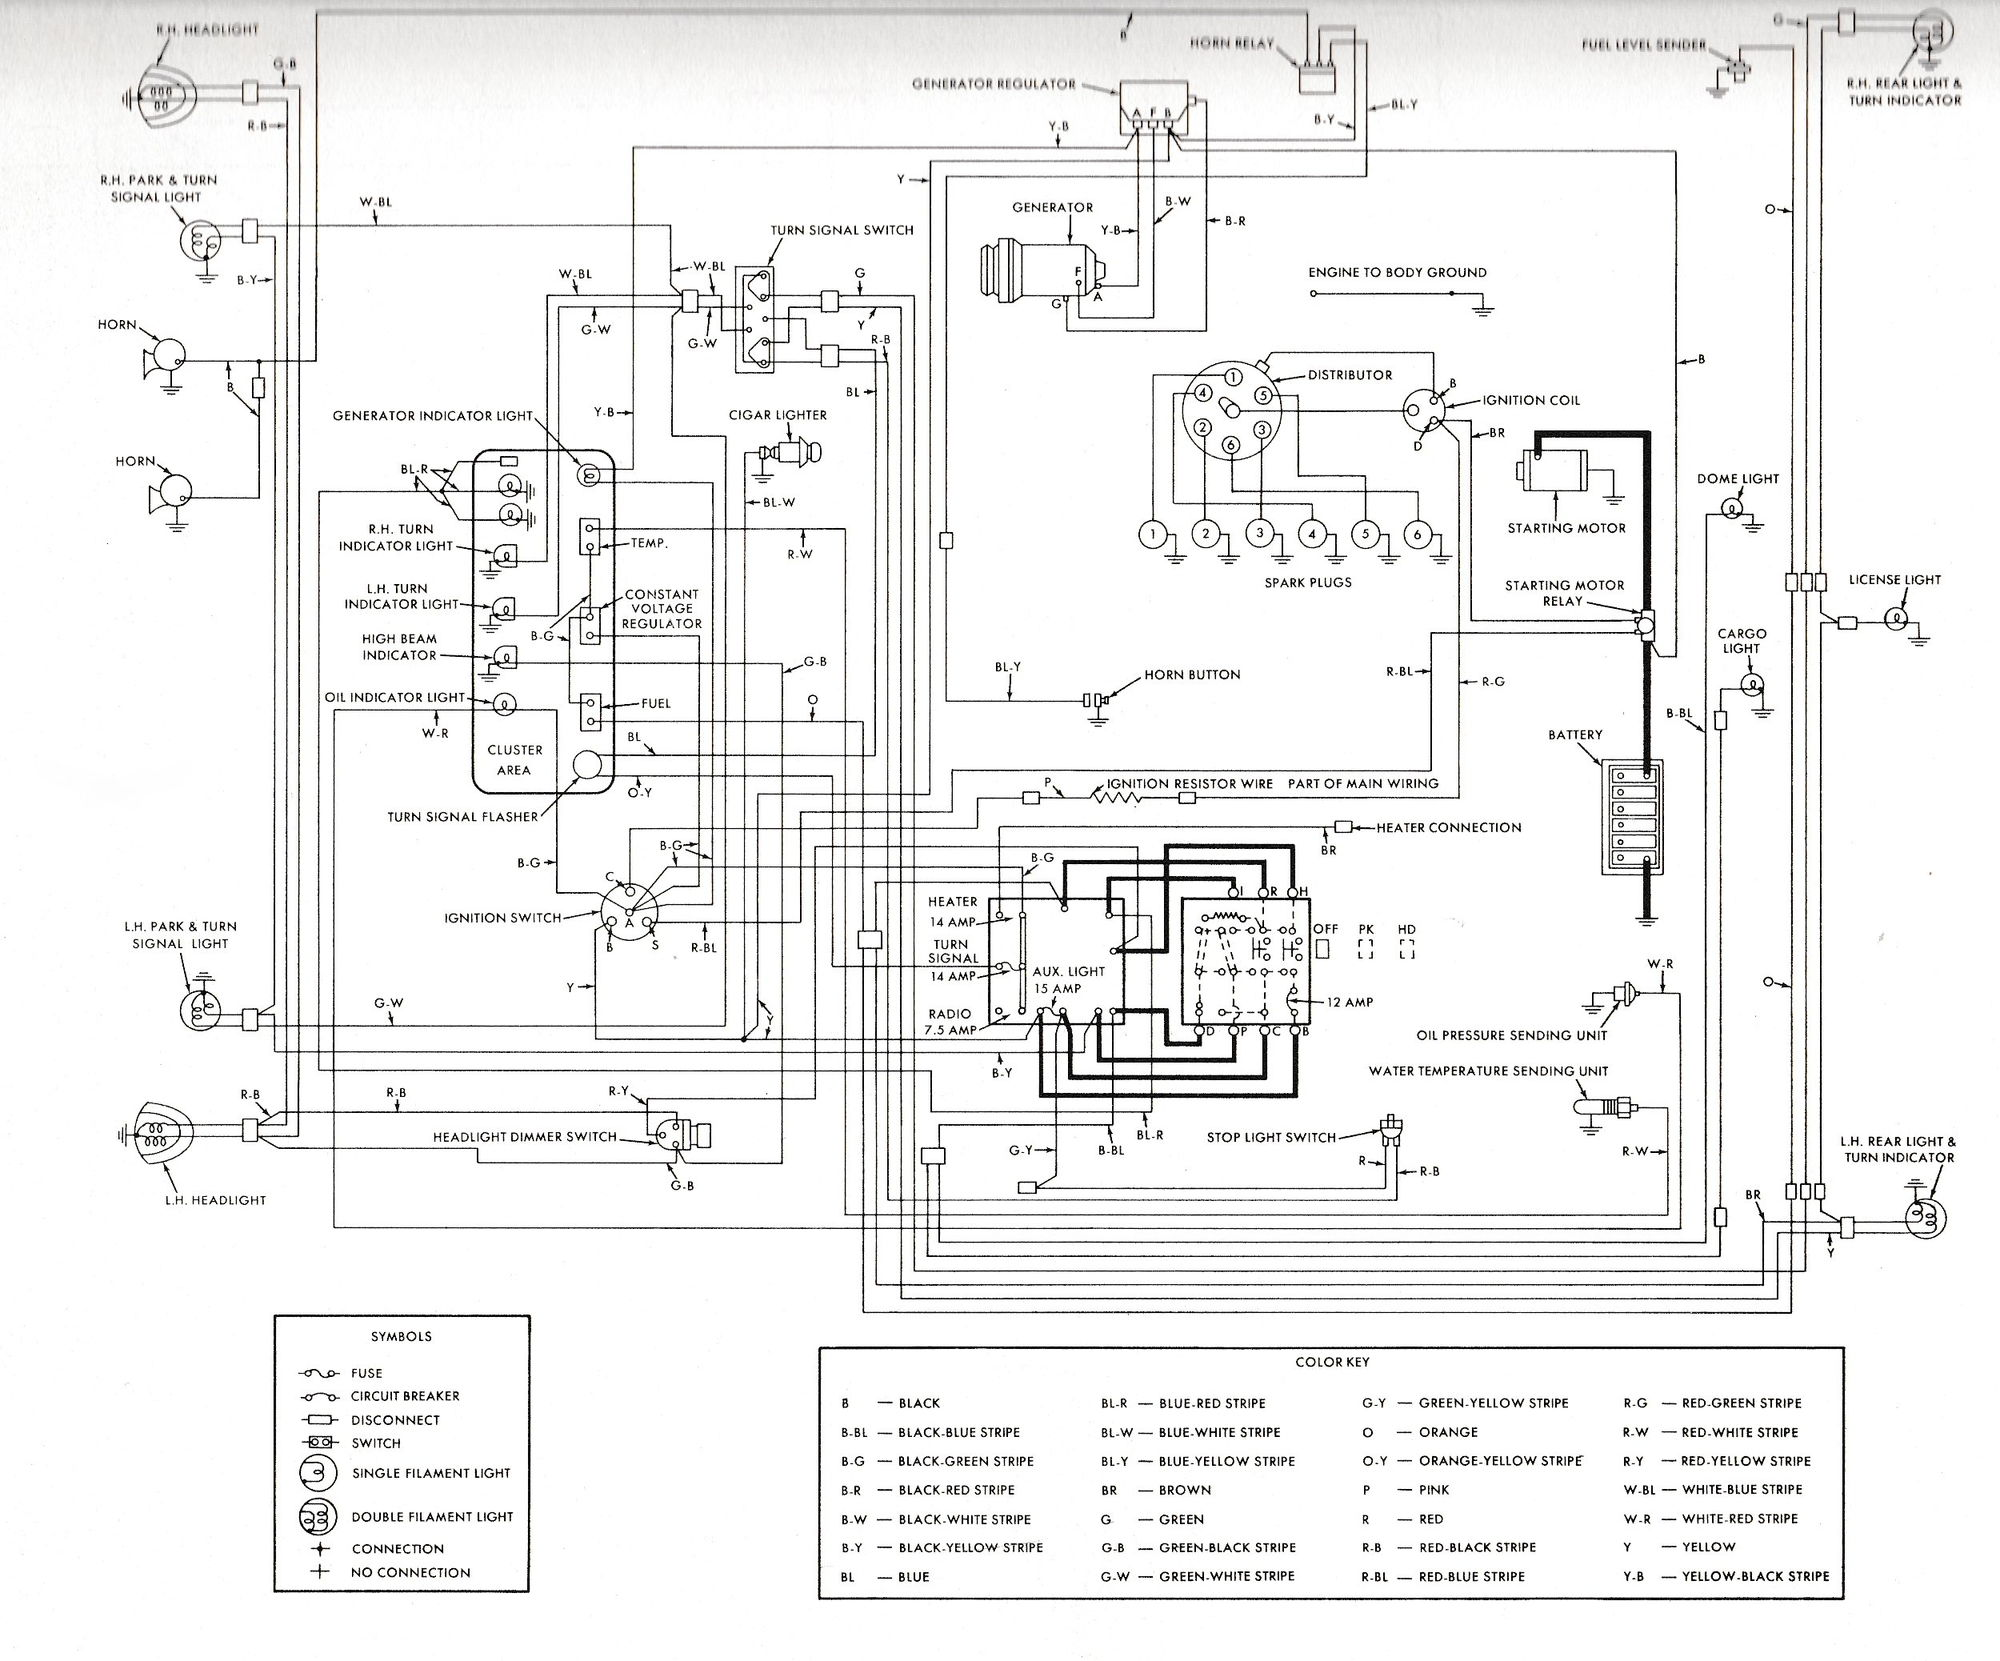 F150 5 4l Engine Wiring Diagram